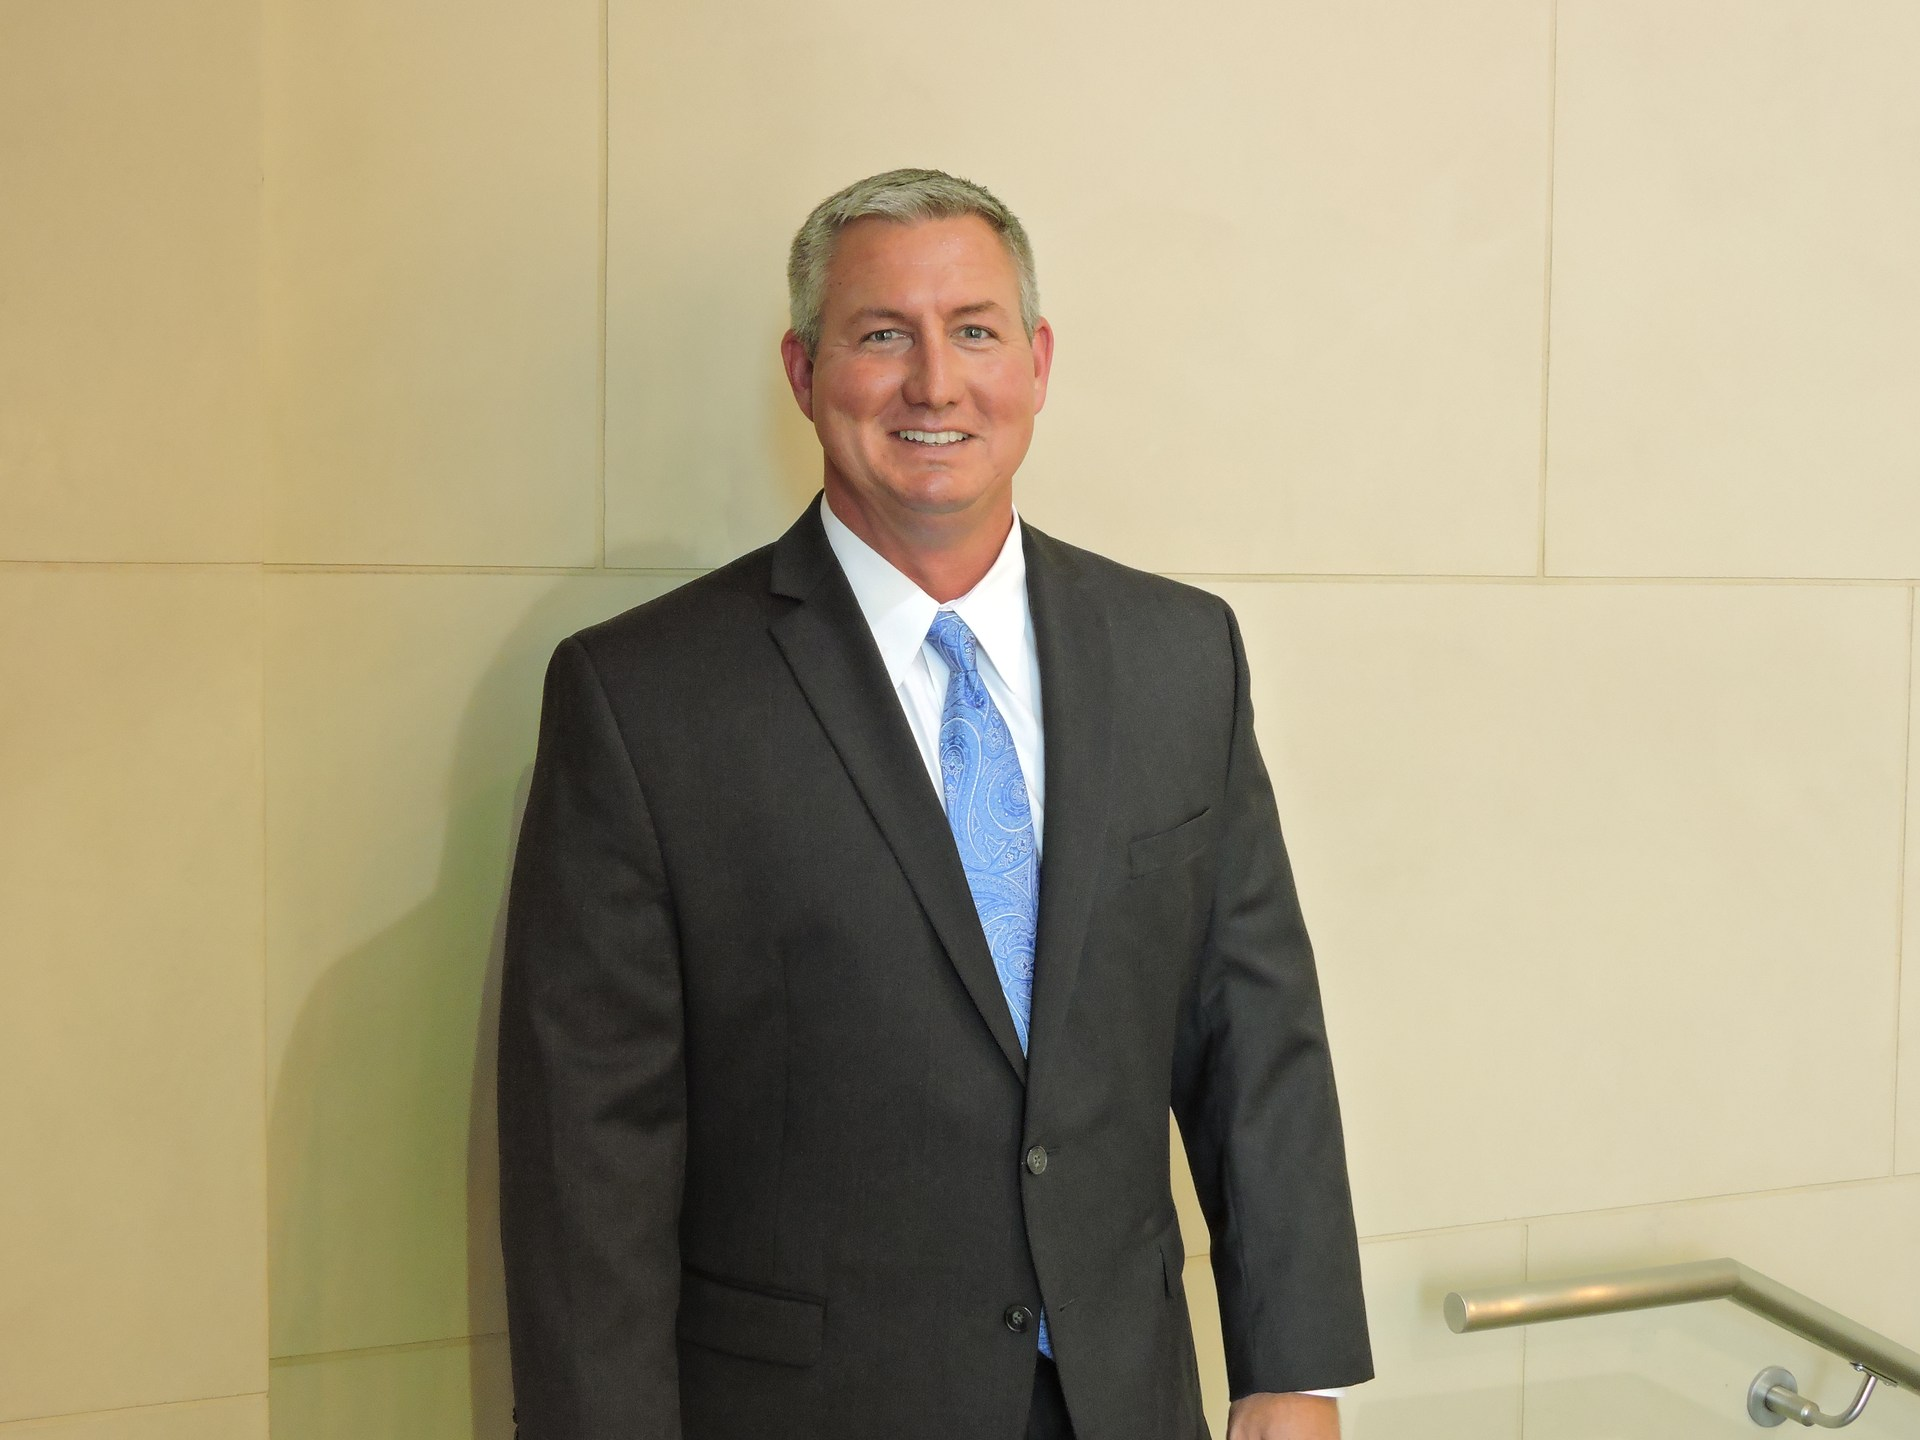 Picture of JISD Superintendent Dr. Chad Kelly